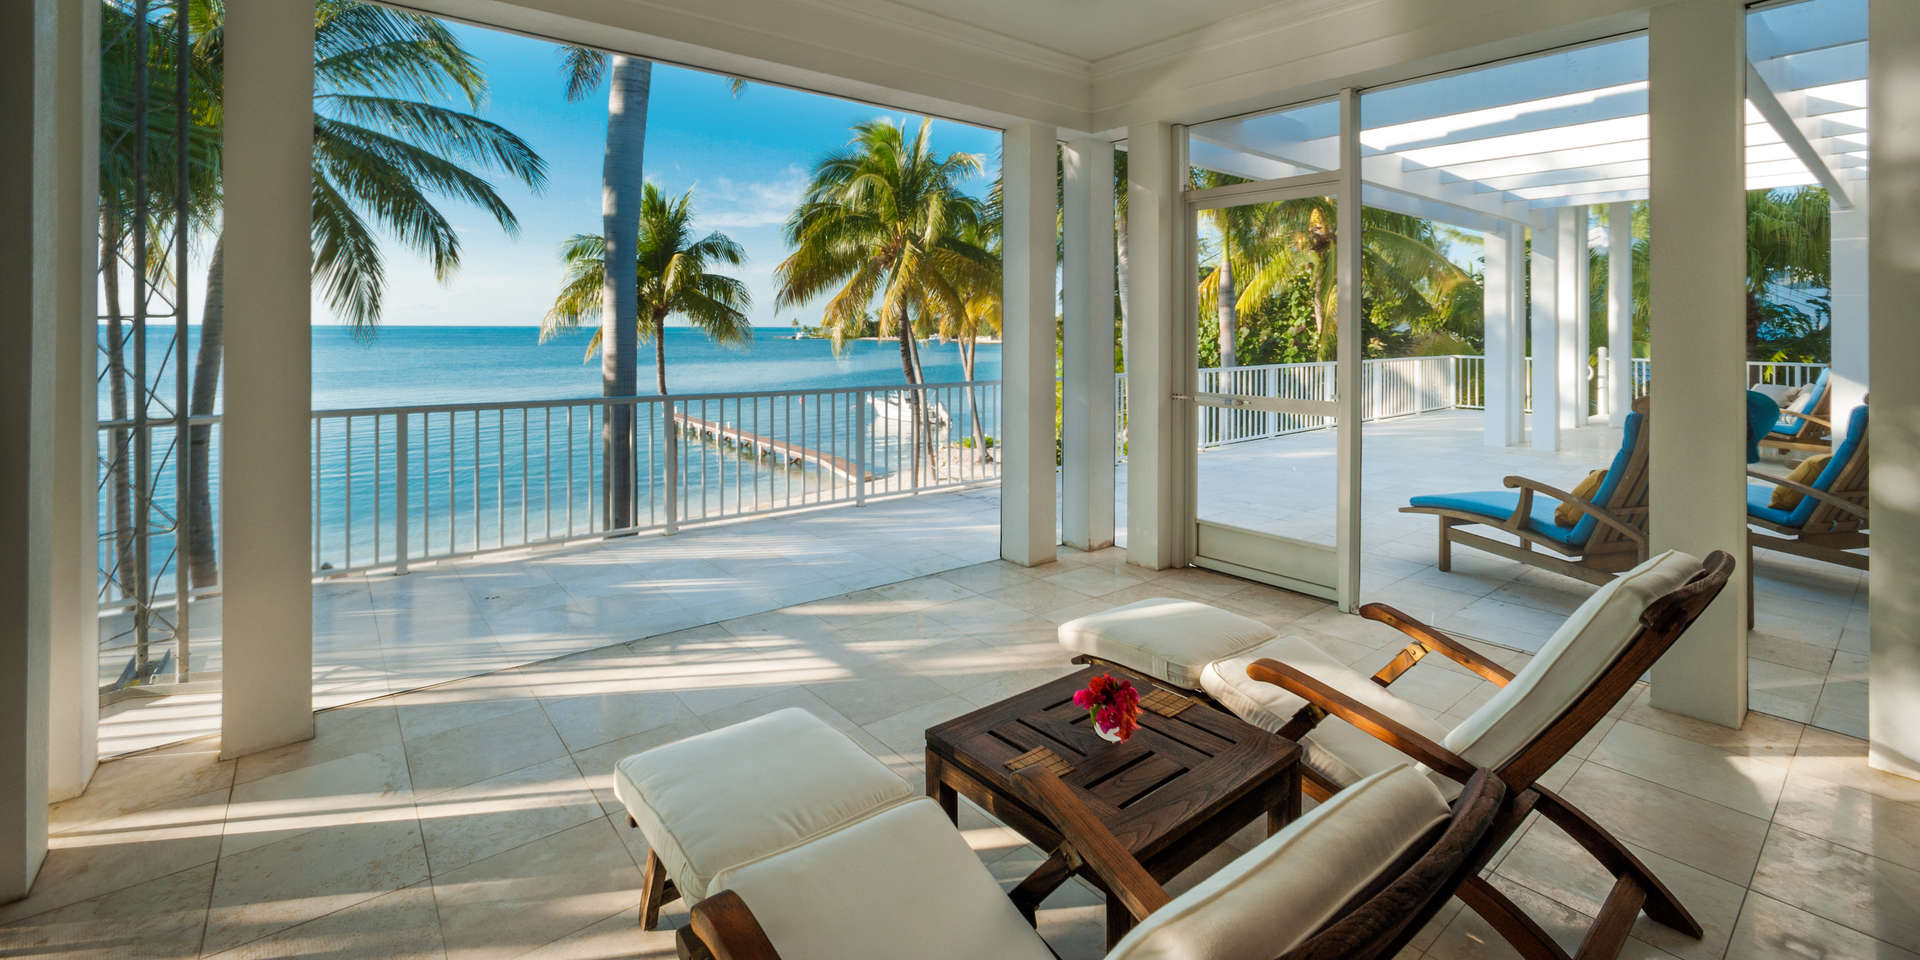 Luxury villa rentals caribbean - Cayman islands - Grand cayman - Cayman kai - Cos Kai - Image 1/20